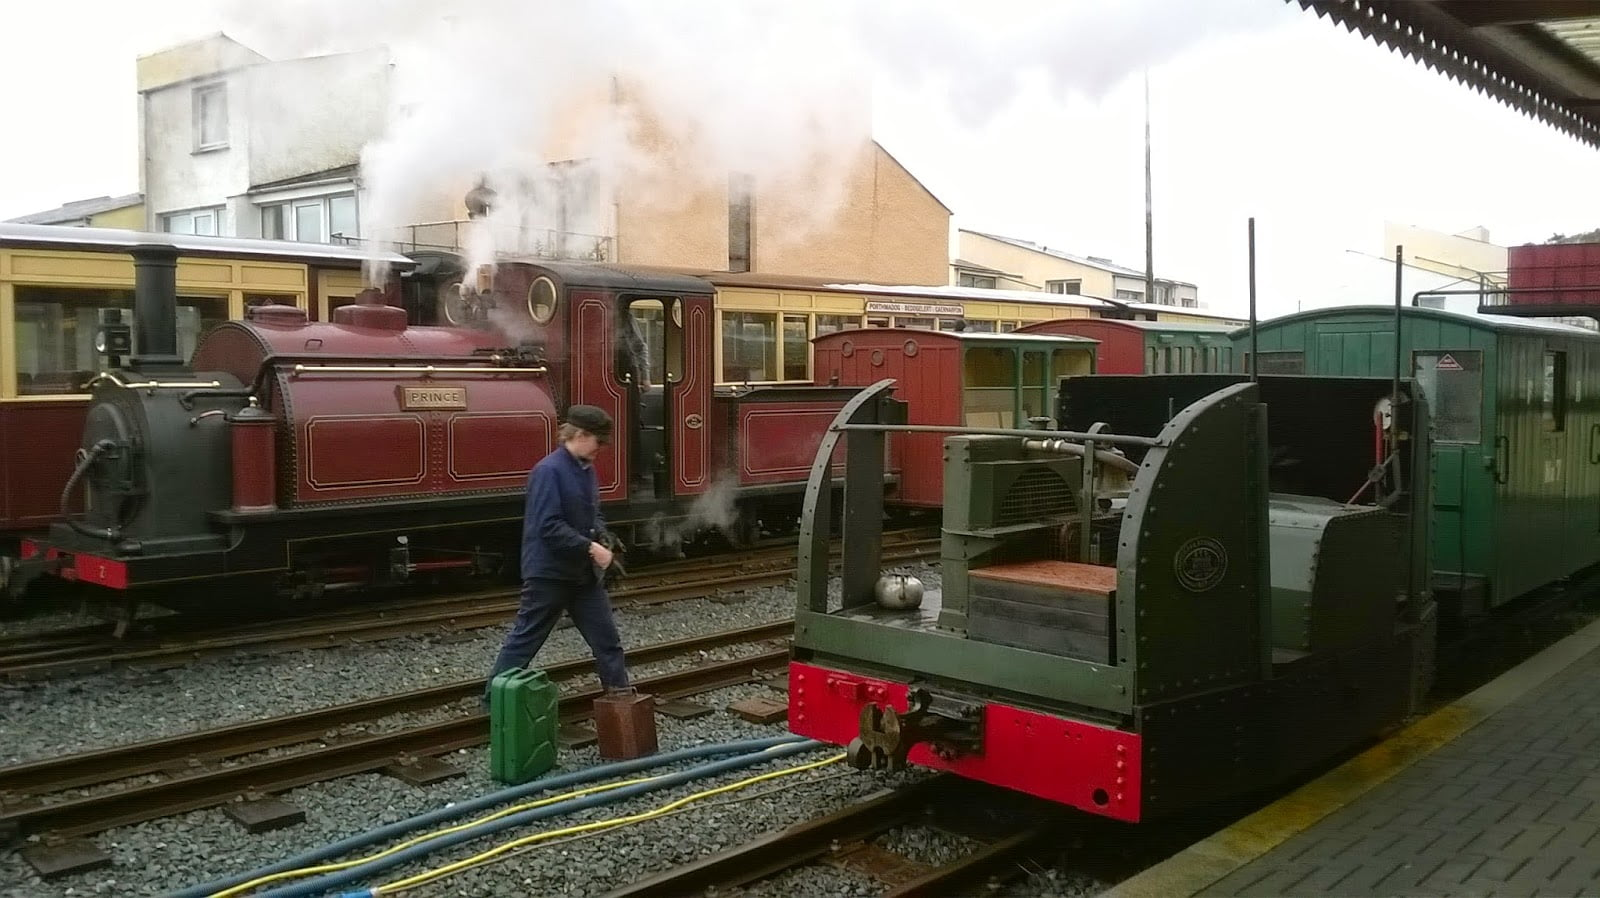 Mary Ann and Prince Shunting at Porthmadog